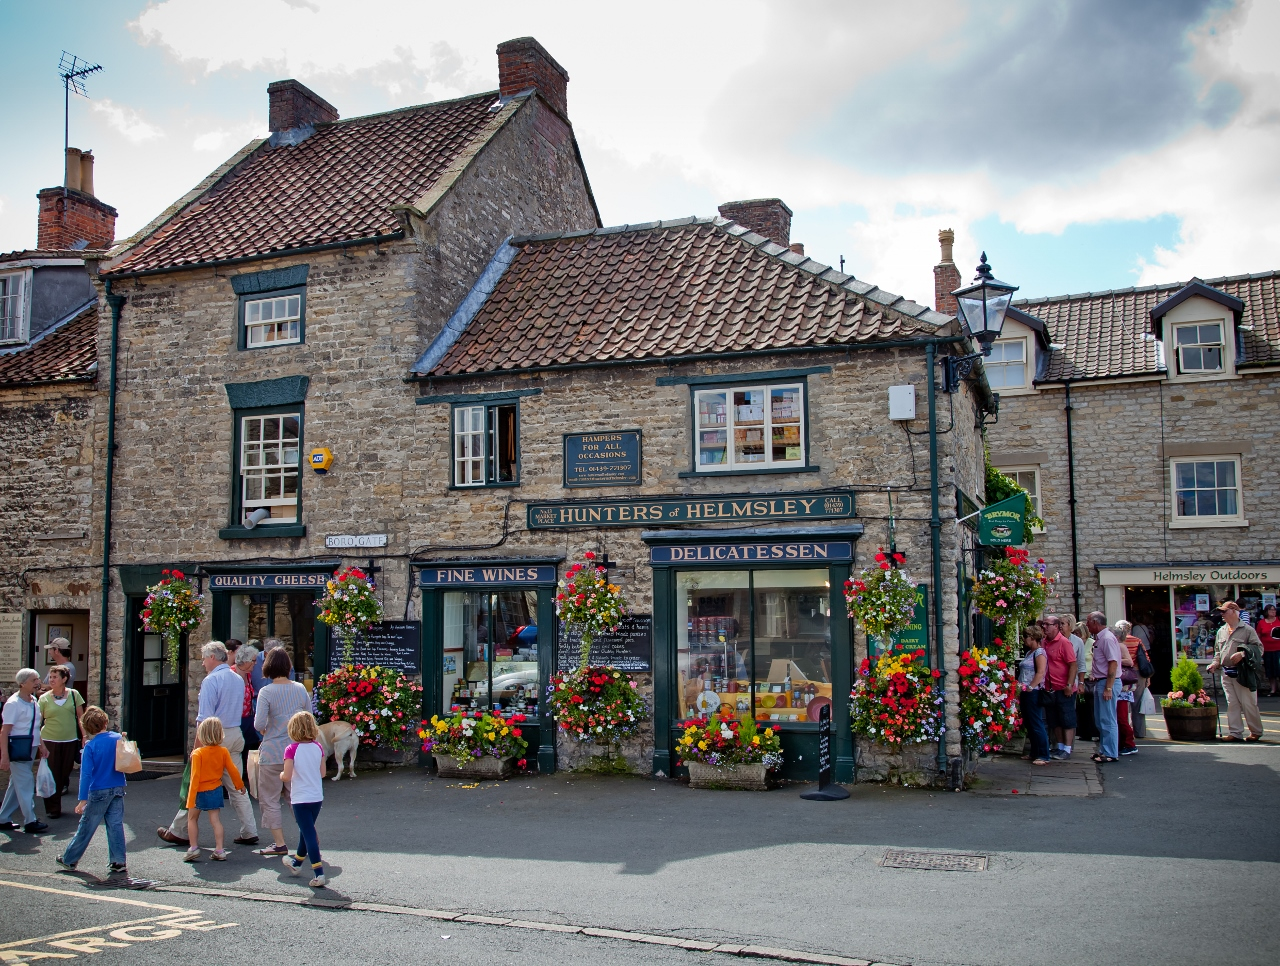 Boutique shopping in Helmsley